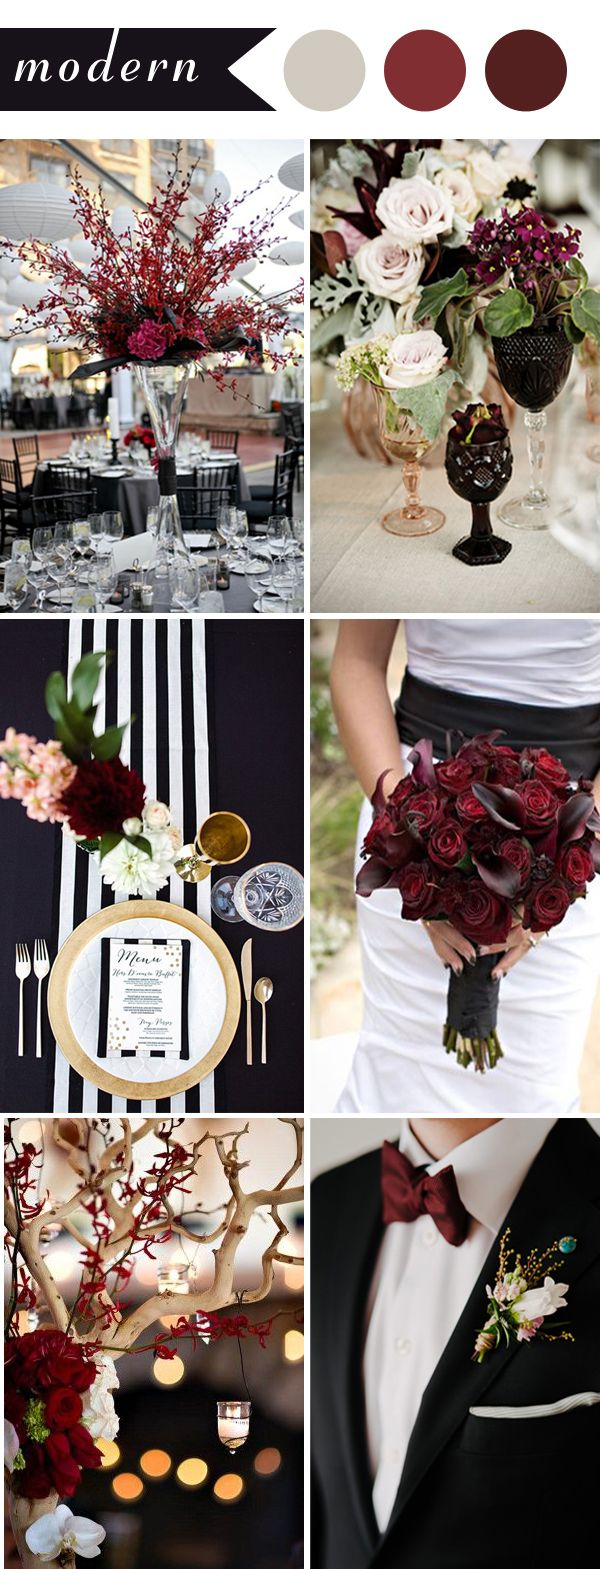 Perfect Burgundy Wedding Themes Ideas For 2017 Elegantweddinginvites Com Blog Burgundy Wedding Theme Modern Wedding Theme Wedding Theme Colors